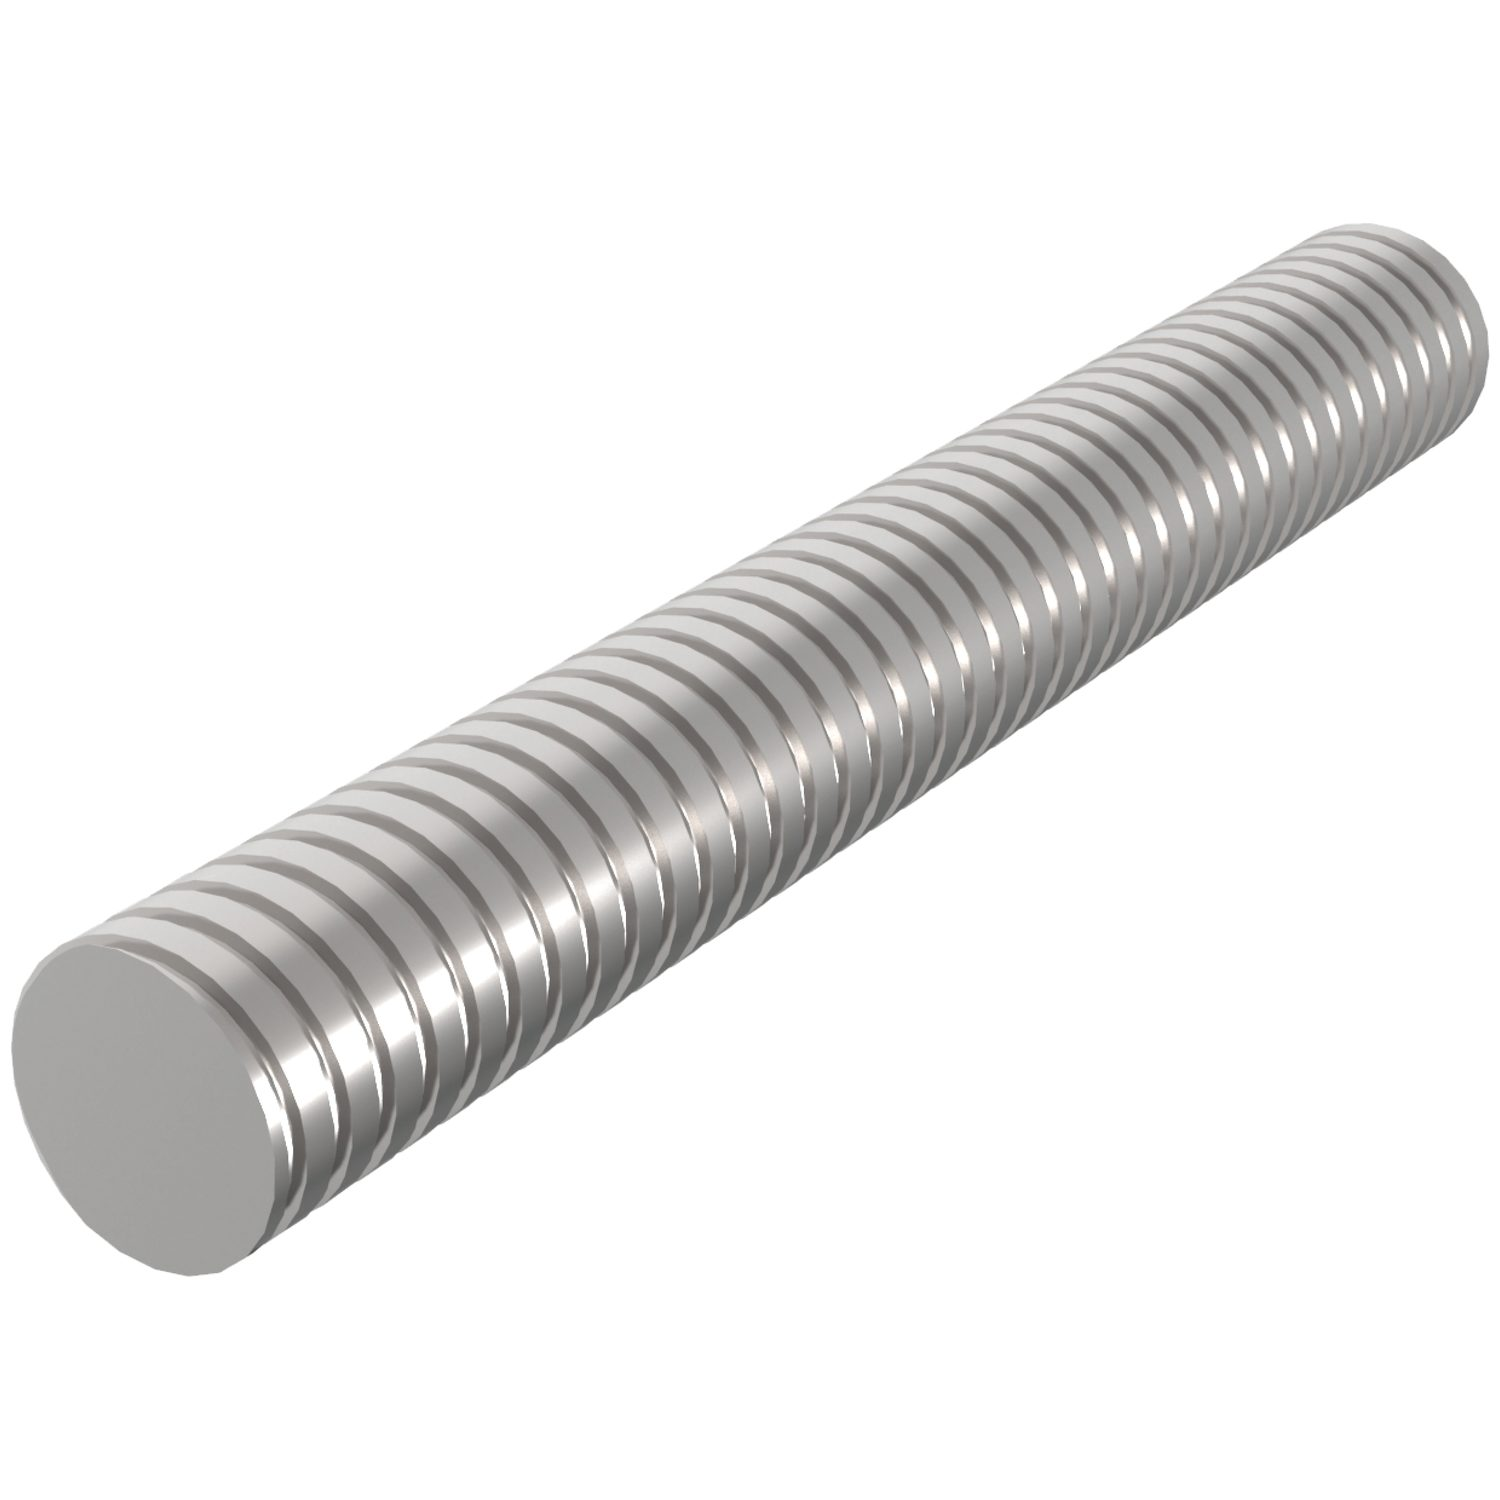 Product L1323, Stainless Lead Screws left hand thread /